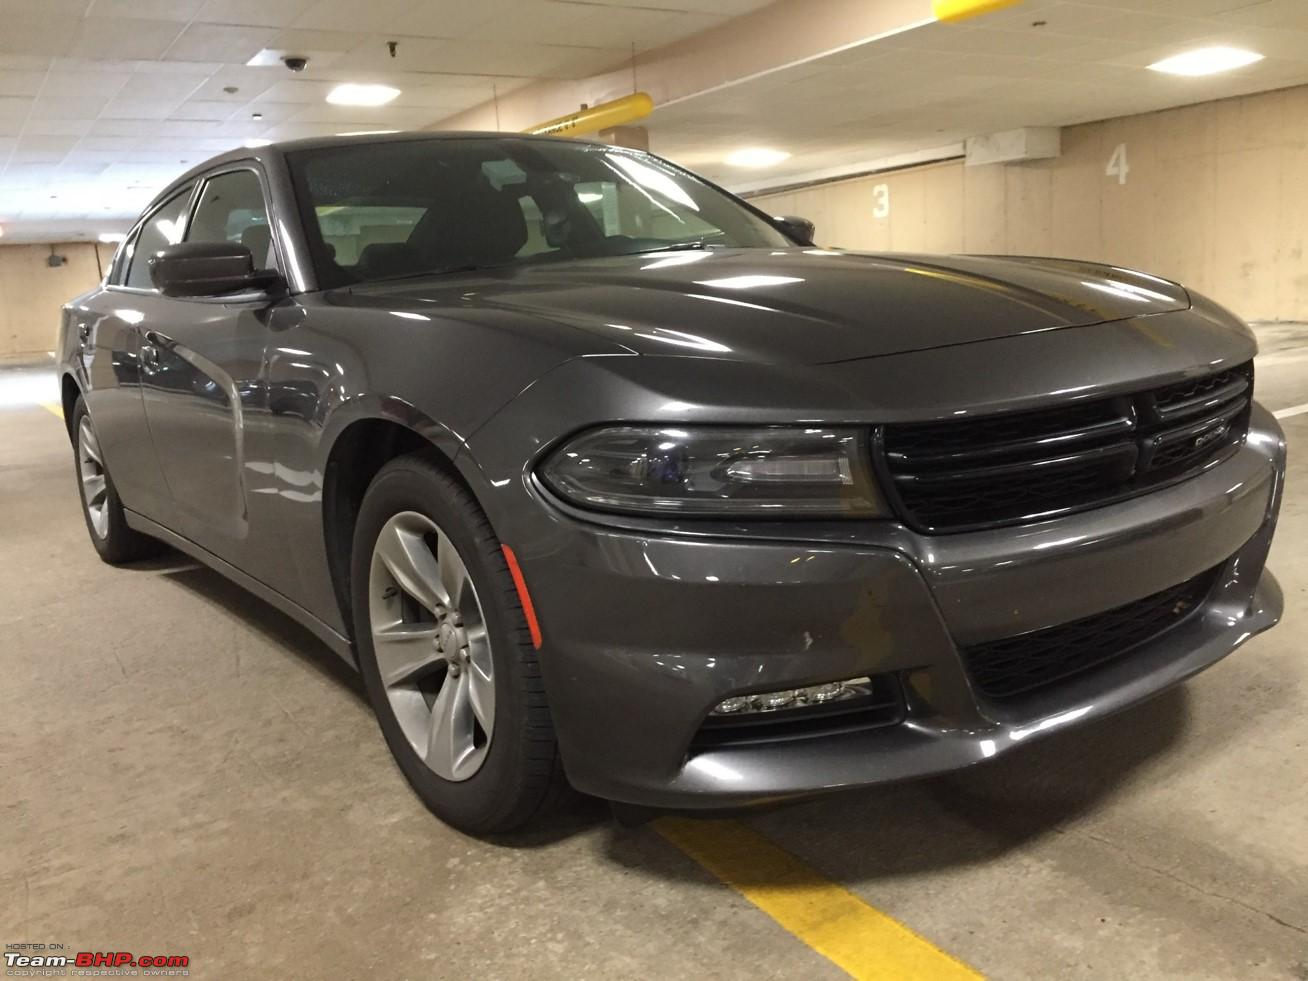 Oh My Dodge! Experience with a Dodge Charger SXT - Team-BHP